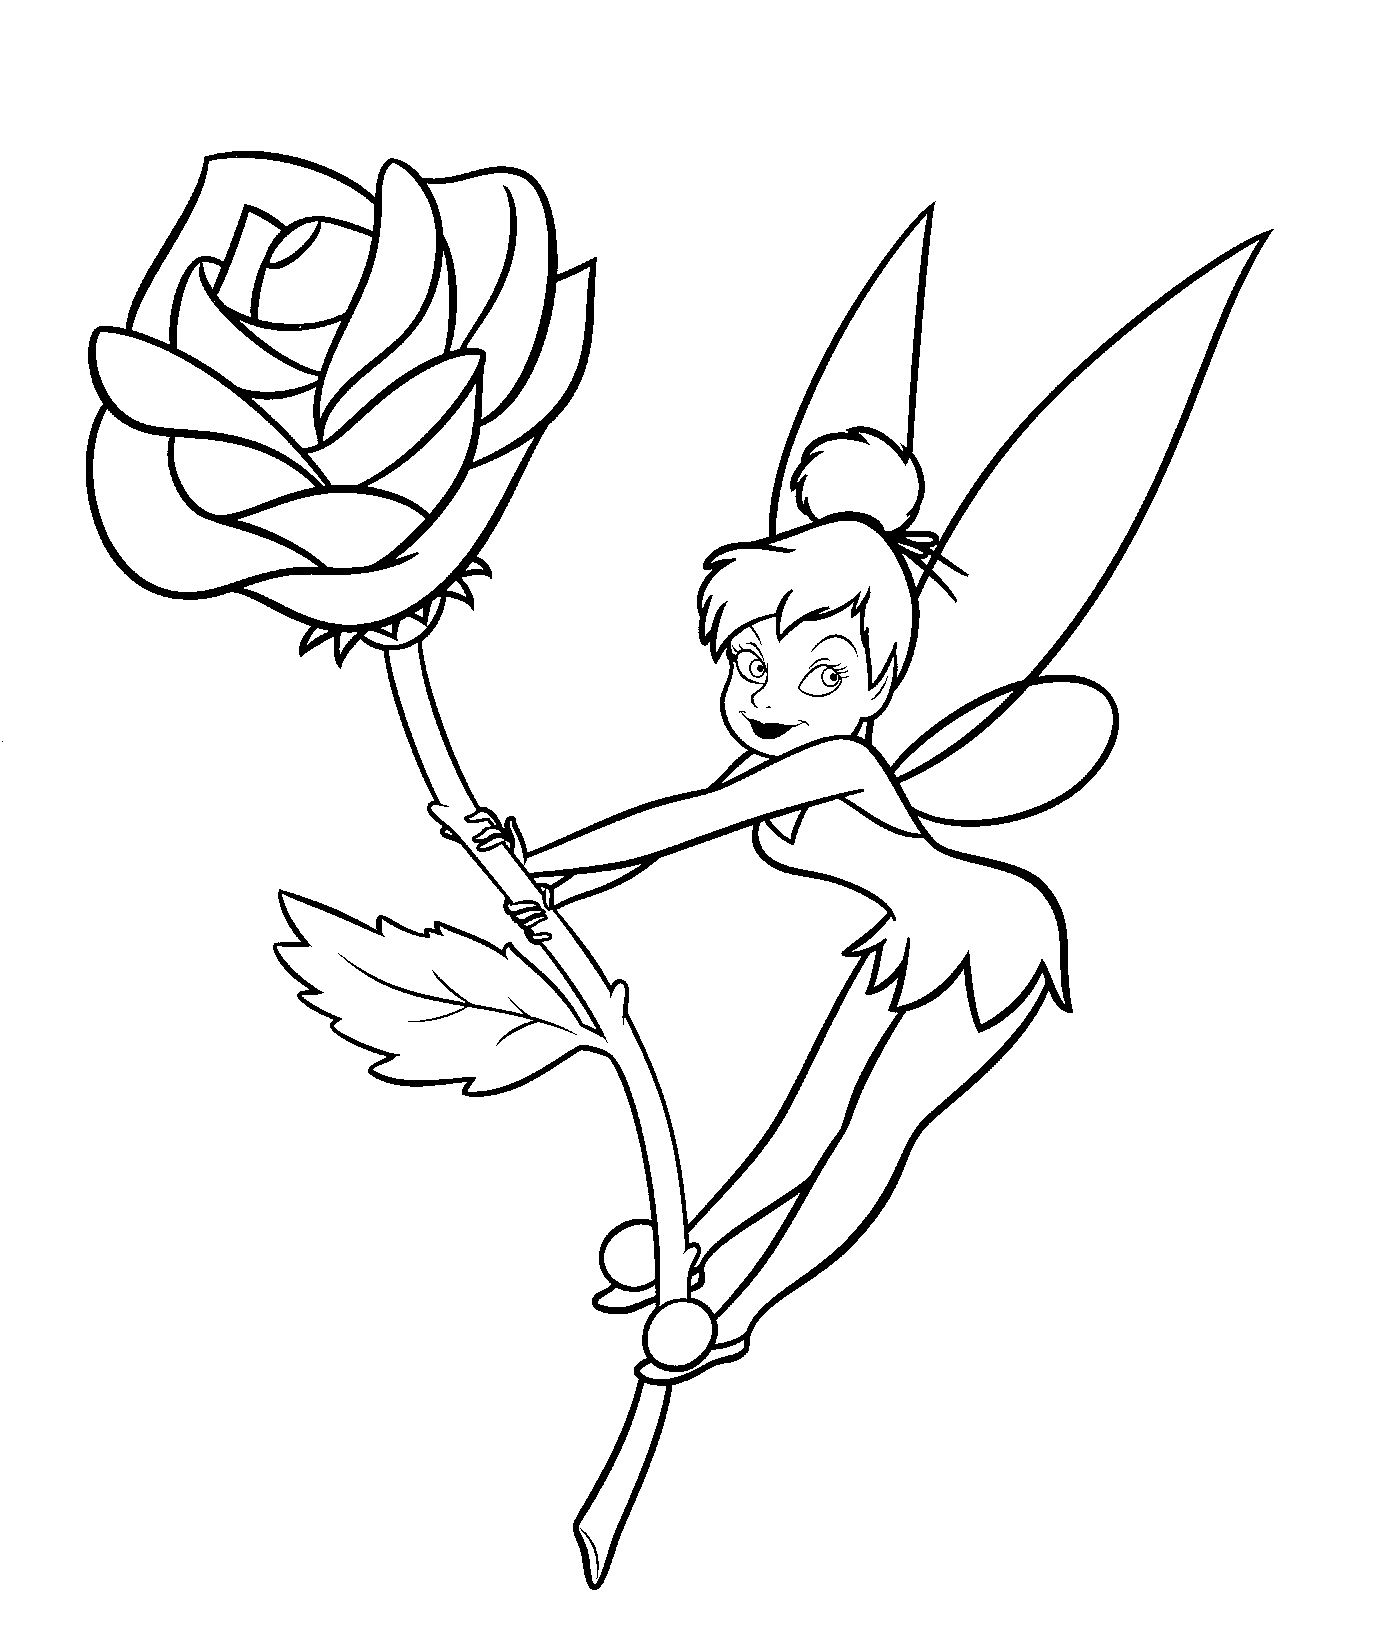 tinker bell coloring pages coloring pages tinkerbell coloring pages and clip art pages bell tinker coloring